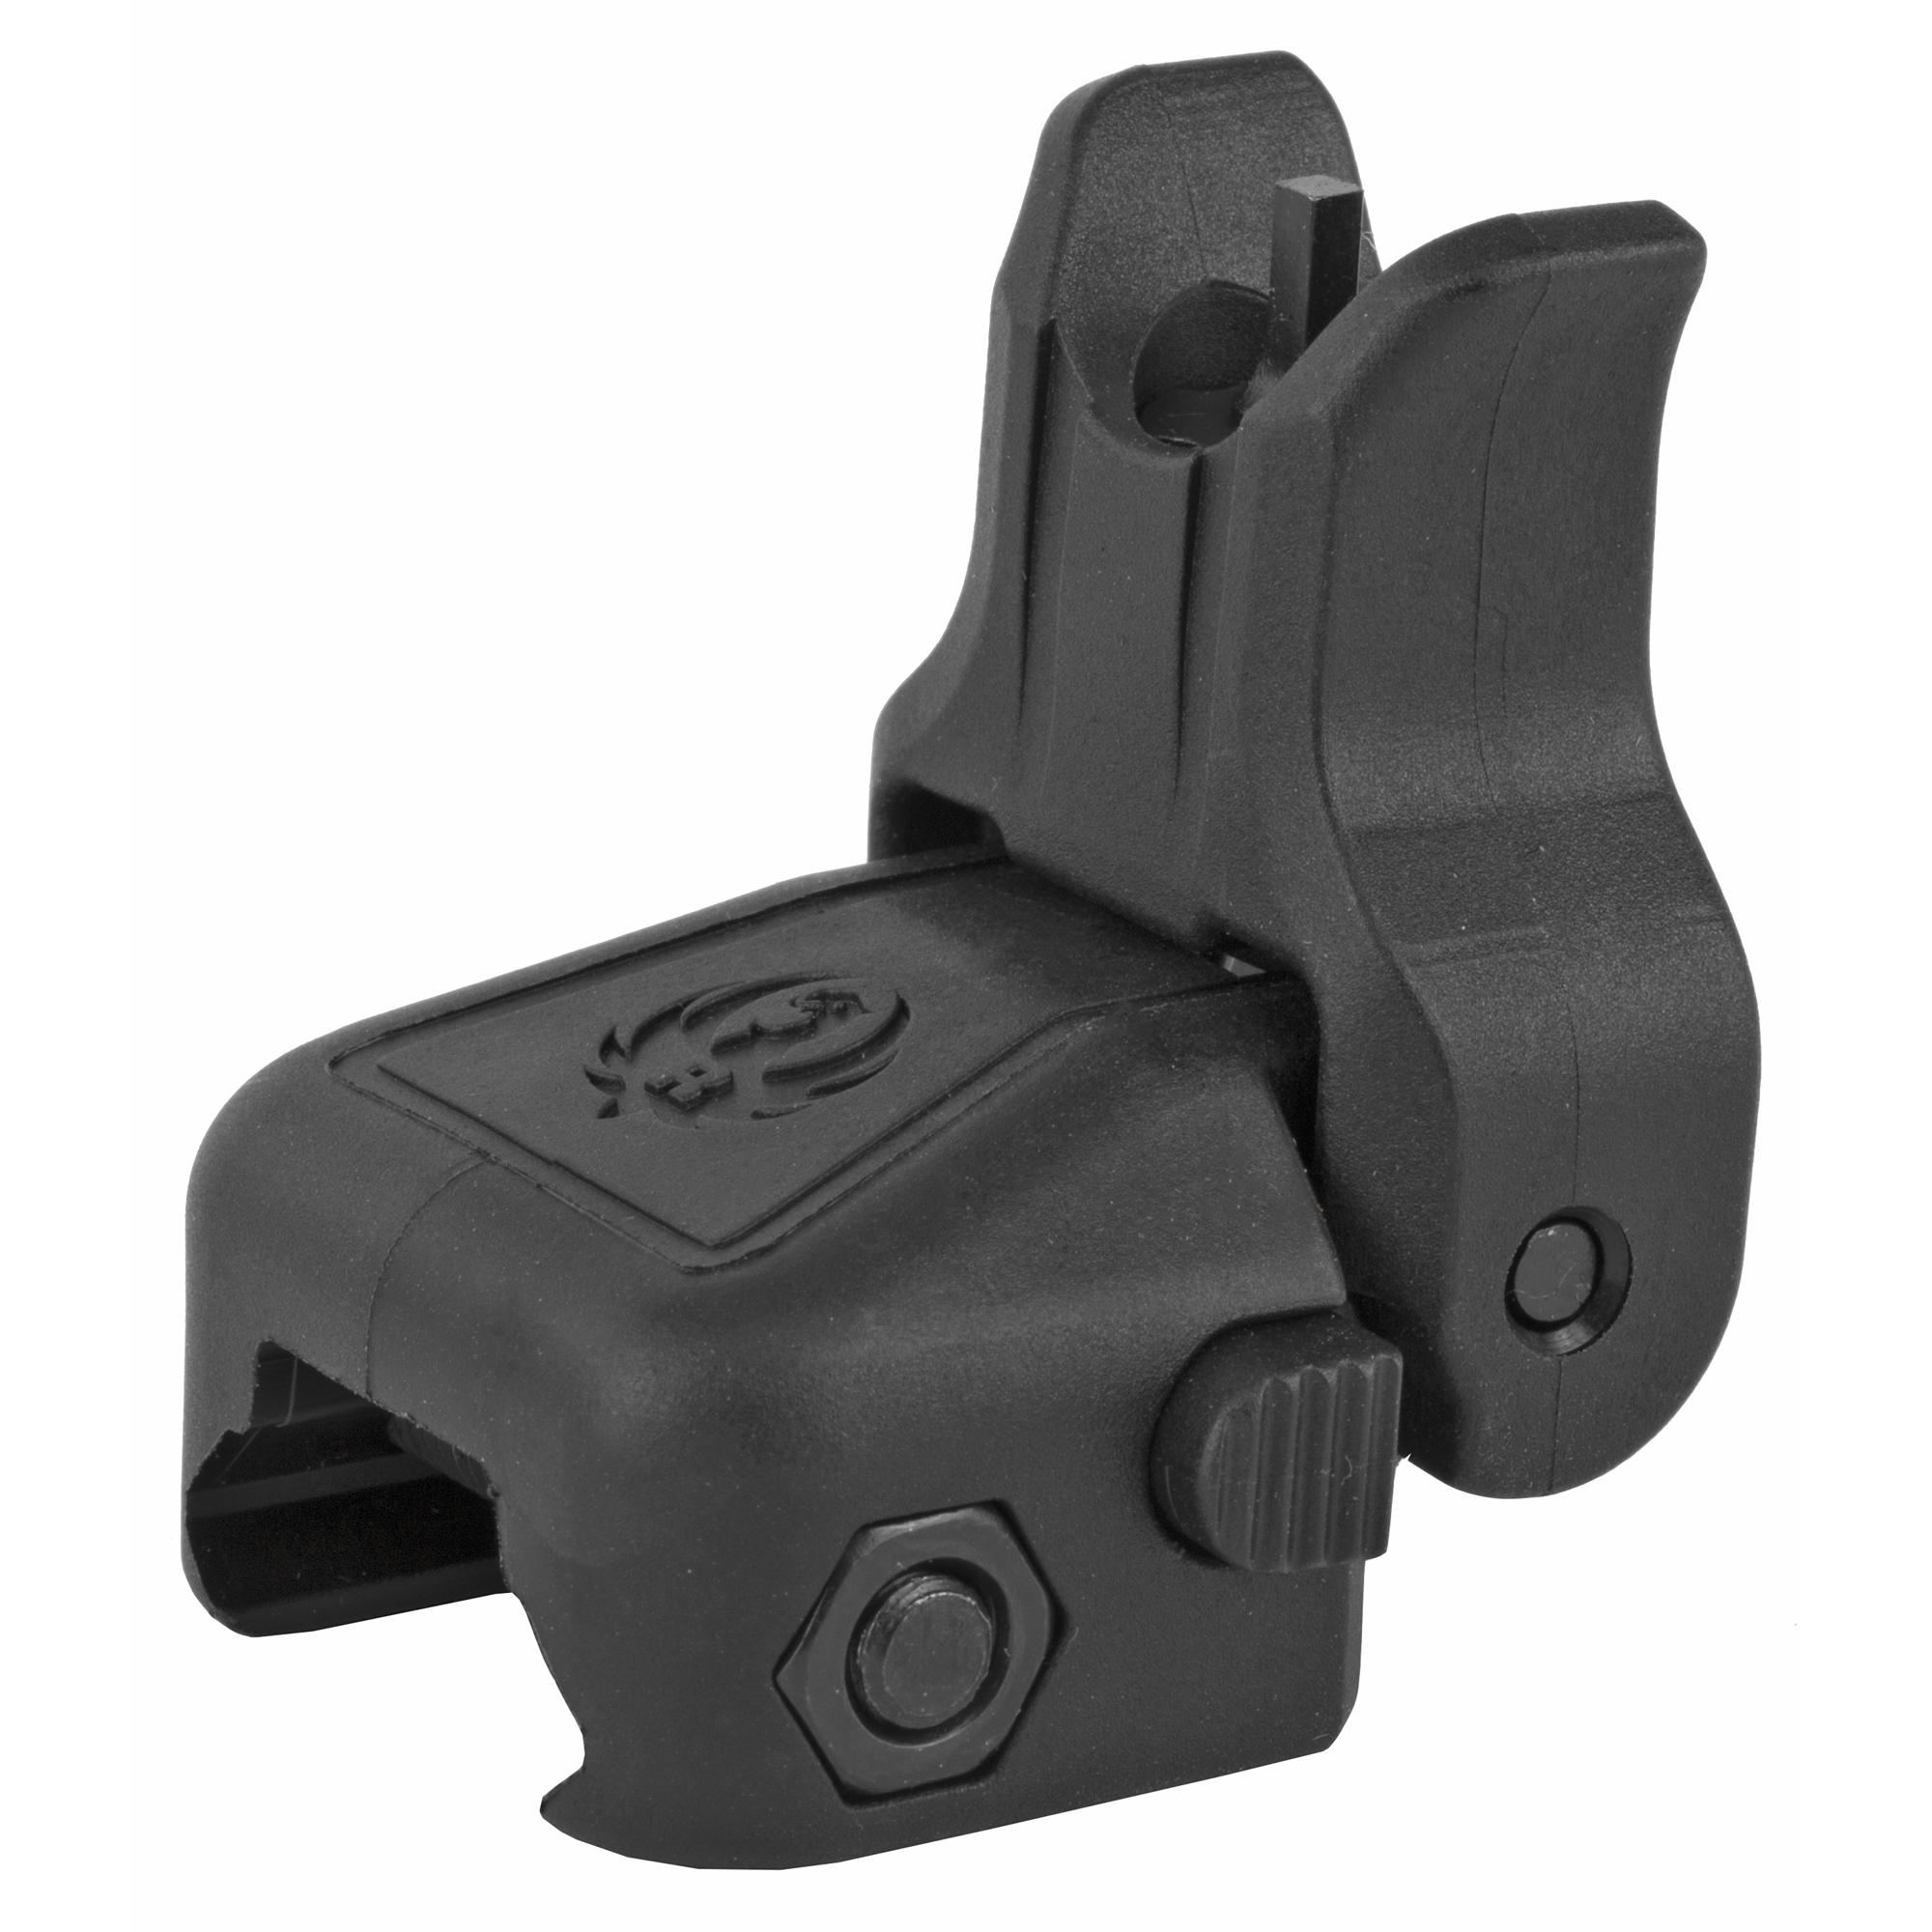 "The custom-designed Ruger(R) folding Front Sight seamlessly integrates on the Ruger(R) SR-22(R)"" the Ruger(R) SR-556(R)"" SR-762(R)"" and any modern sporting rifle with a same-plane Picatinny rail mounting system. This lightweight"" polymer sight is elevation-adjustable; folds flat to make room for optics and is spring-loaded to allow for rapid deployment with the push of a button."